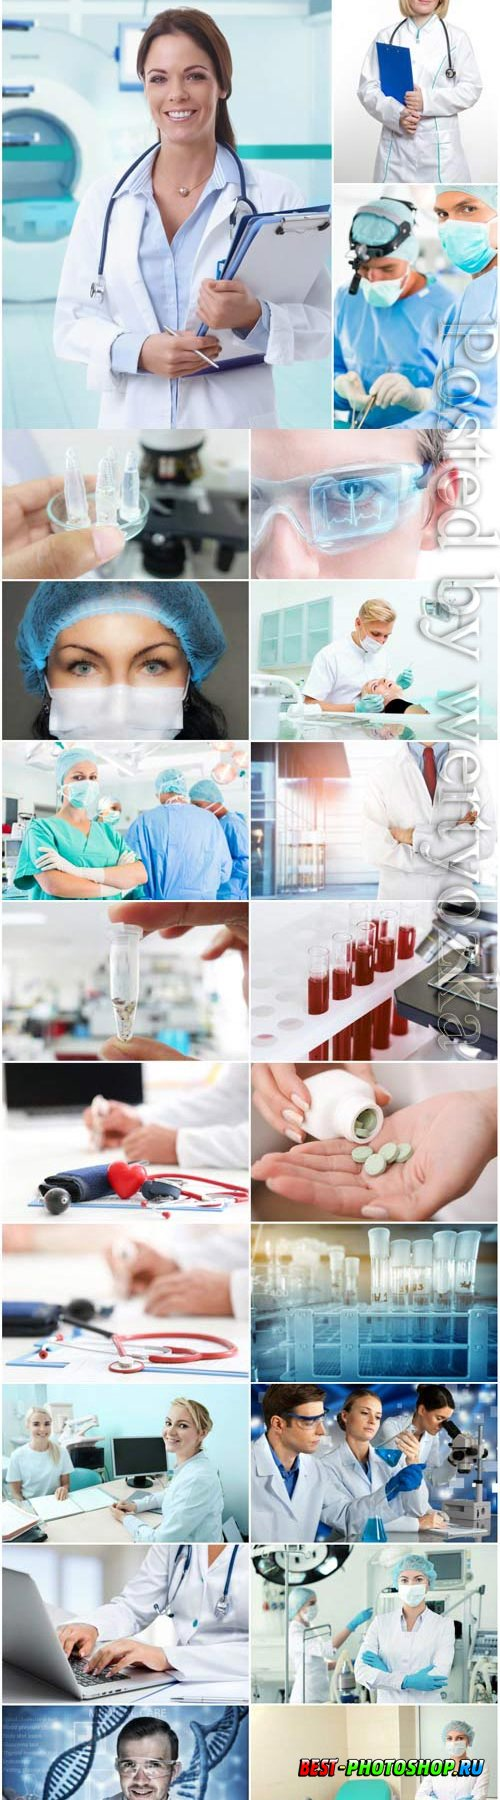 Medical set of doctors in the laboratory stock photo